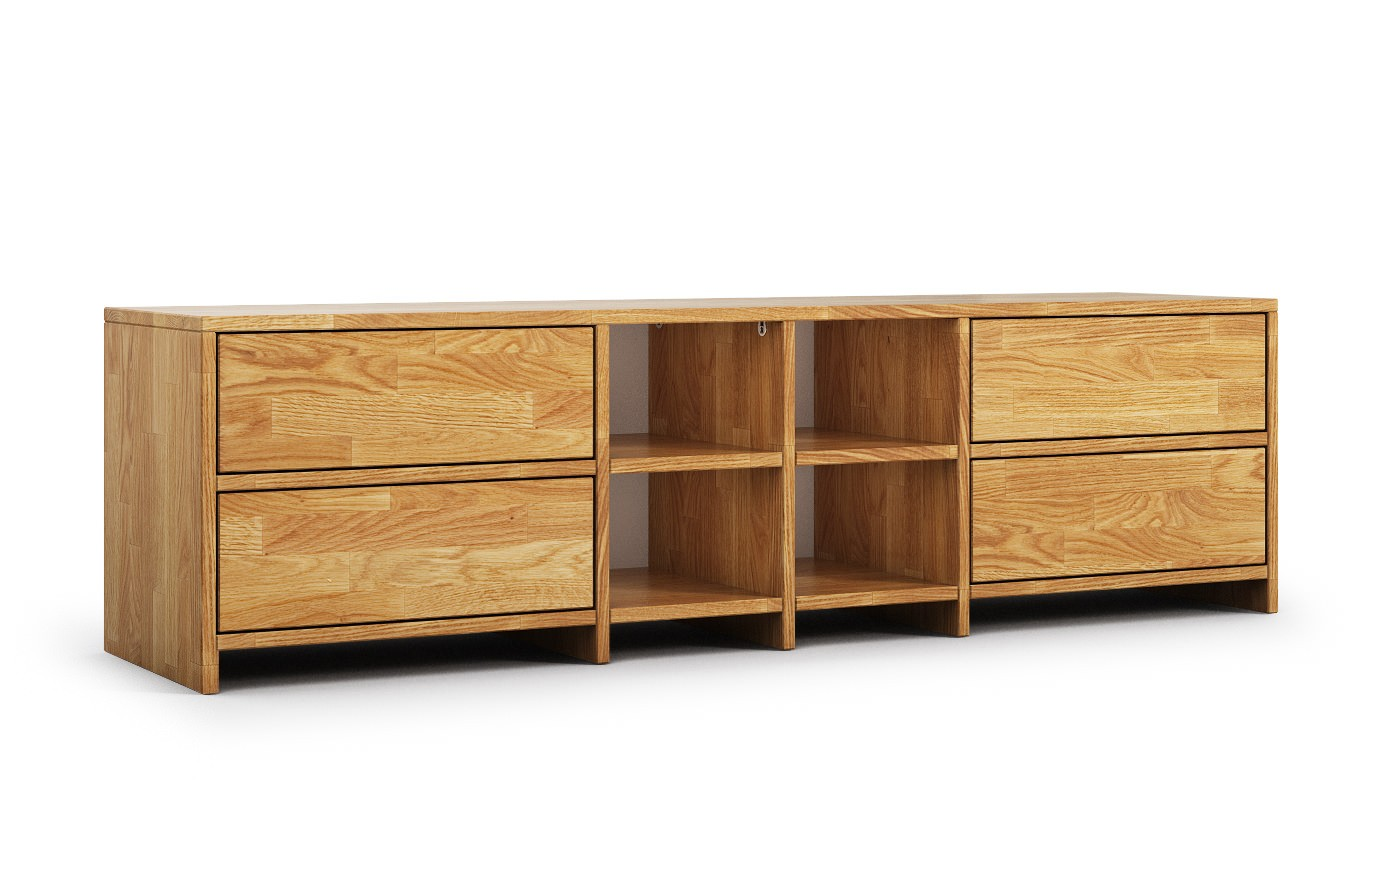 krems in eiche rustikal hifi sideboard nach ma. Black Bedroom Furniture Sets. Home Design Ideas